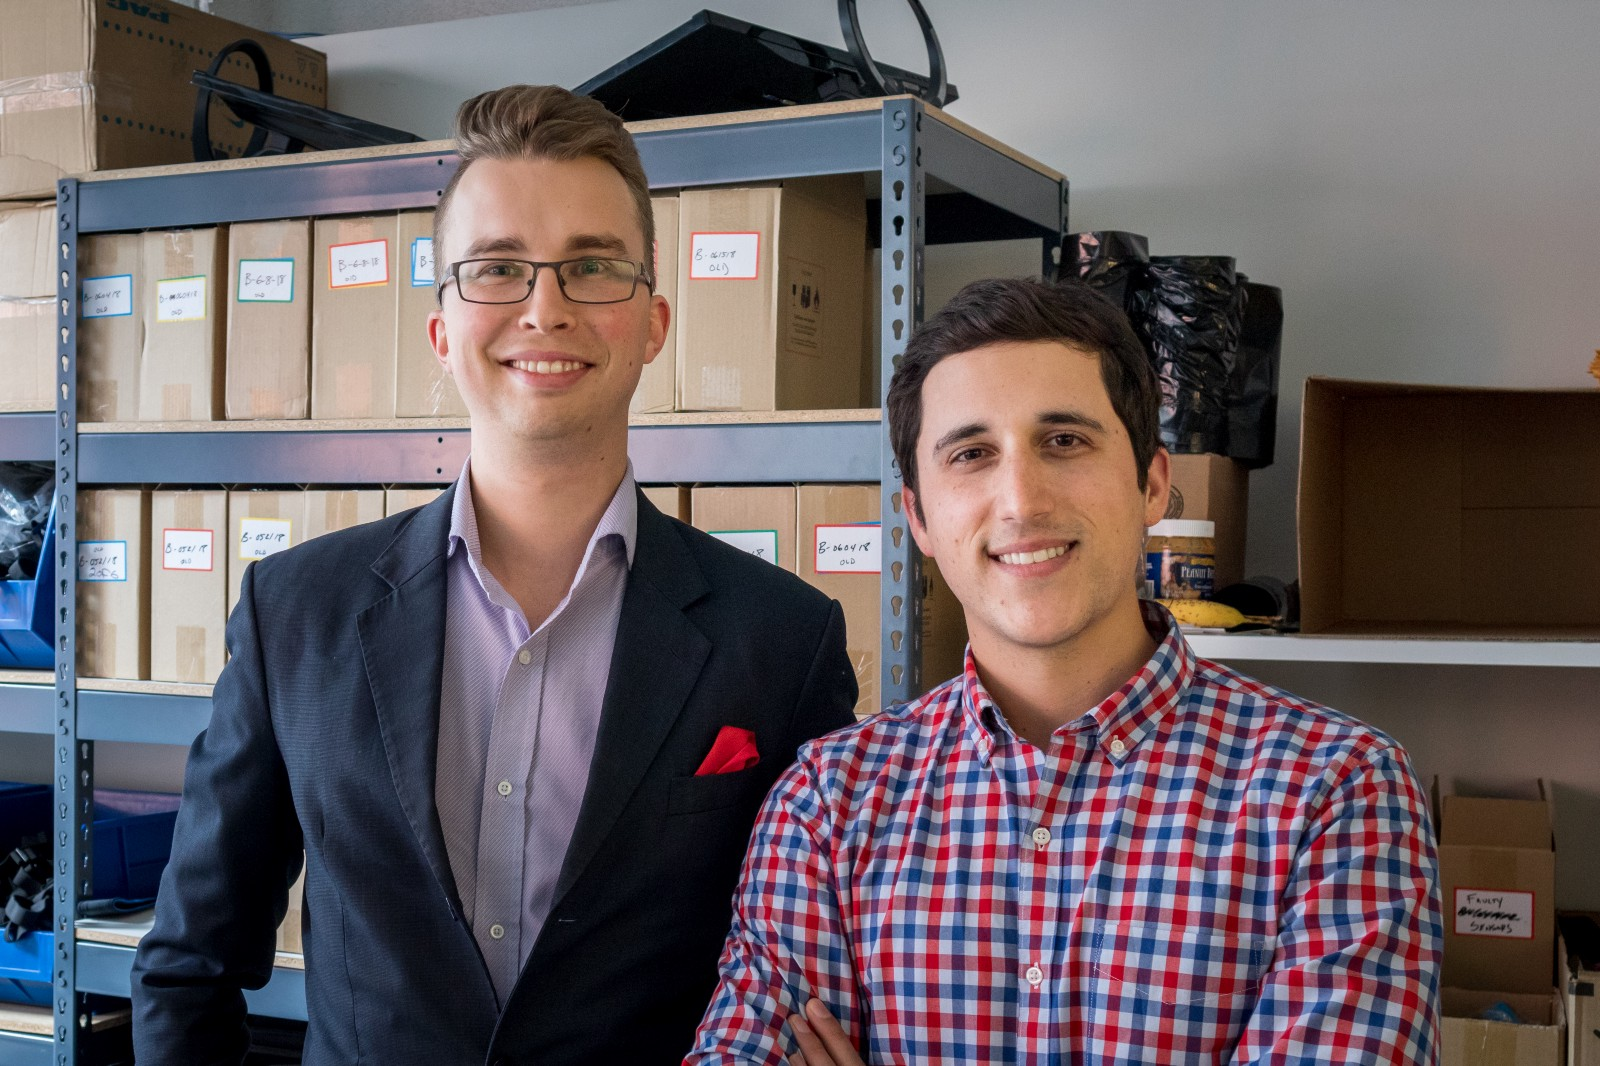 Hinge Health cofounders, Gabriel Mecklenburg and Daniel Perez, in our fulfillment center